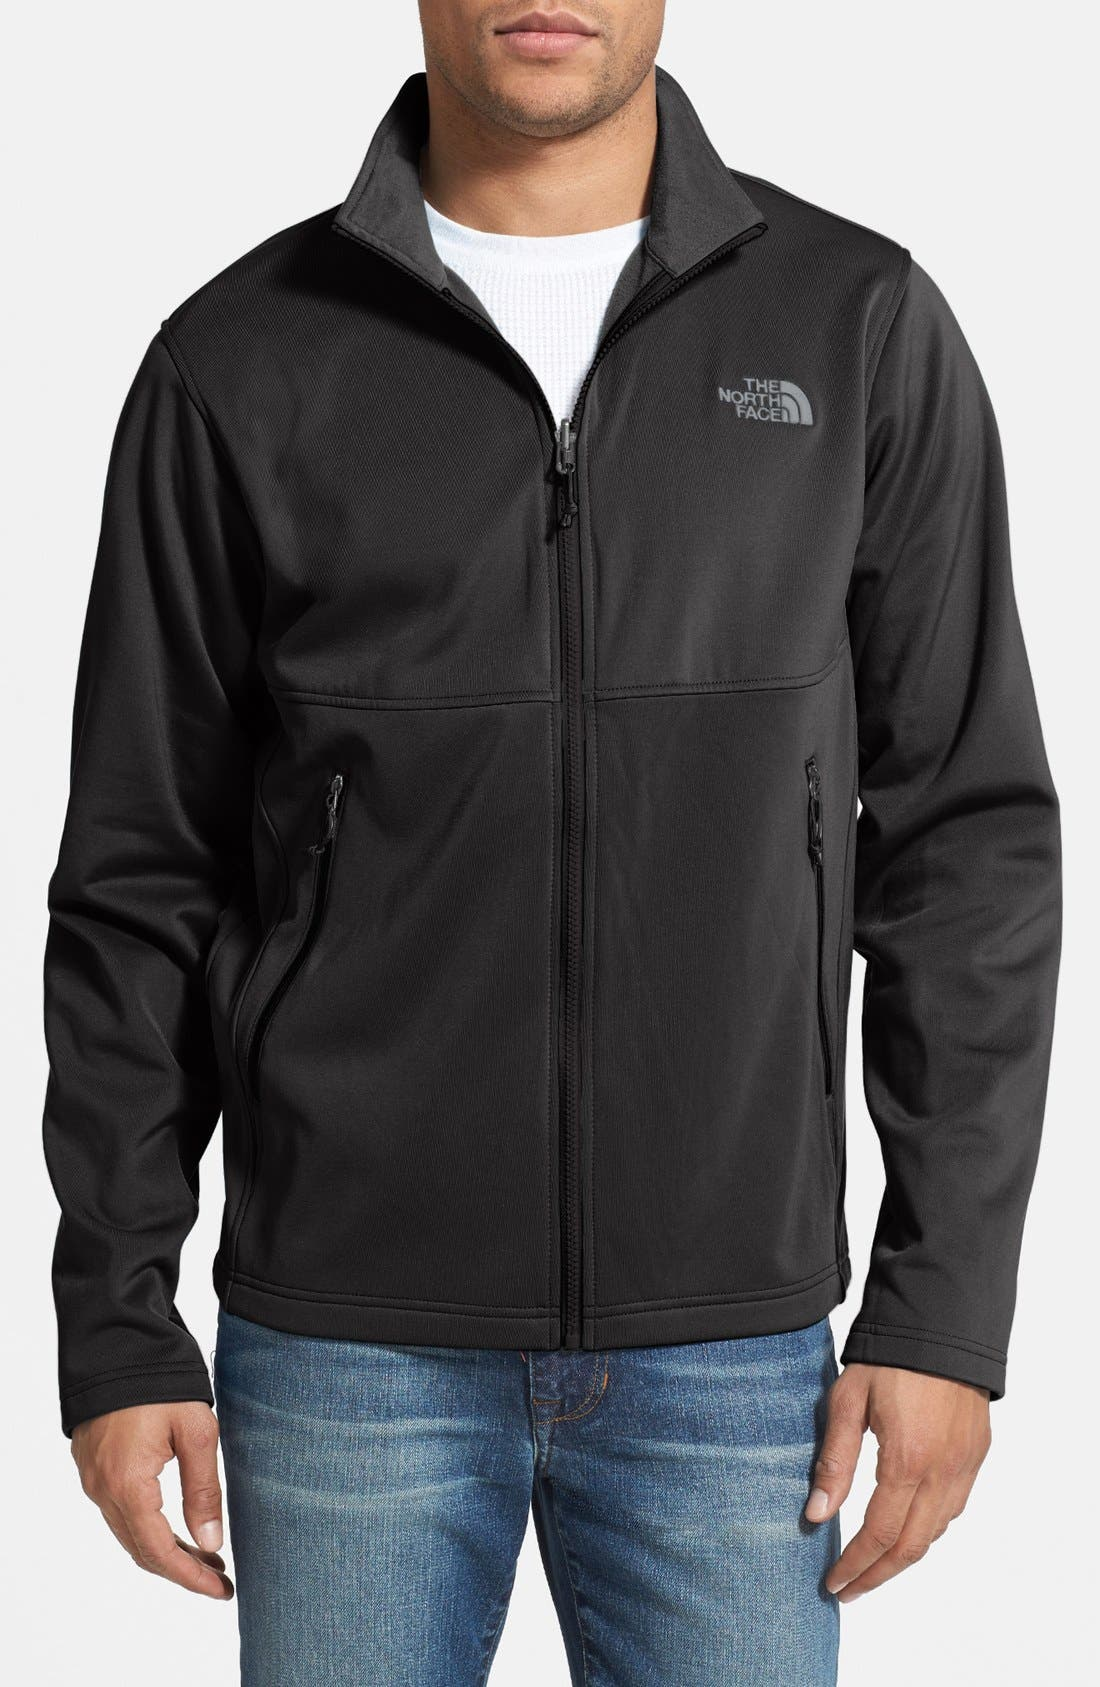 THE NORTH FACE, 'Momentum TriClimate' 3-in-1 Waterproof Hooded Jacket, Alternate thumbnail 4, color, 001